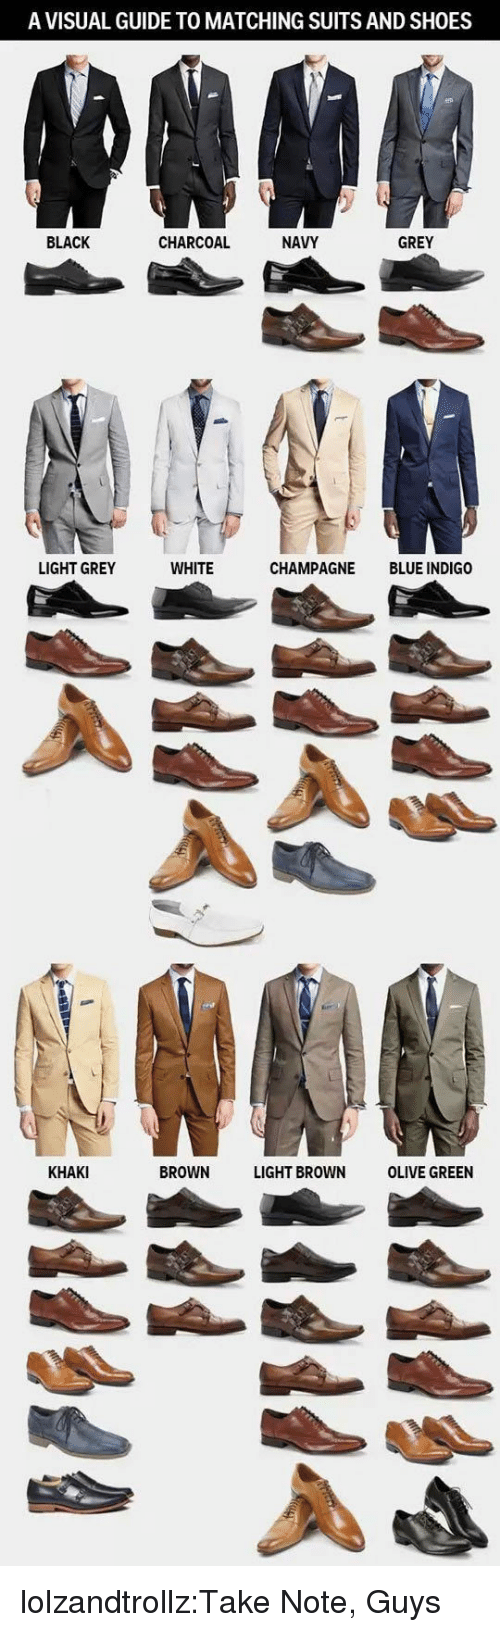 Suits: A VISUAL GUIDE TO MATCHING SUITS AND SHOES  BLACK  CHARCOAL  NAVY  GREY  LIGHT GREY  WHITE  CHAMPAGNE BLUE INDIGO  KHAKI  BROWN LIGHT BROWN OLIVE GREEN lolzandtrollz:Take Note, Guys